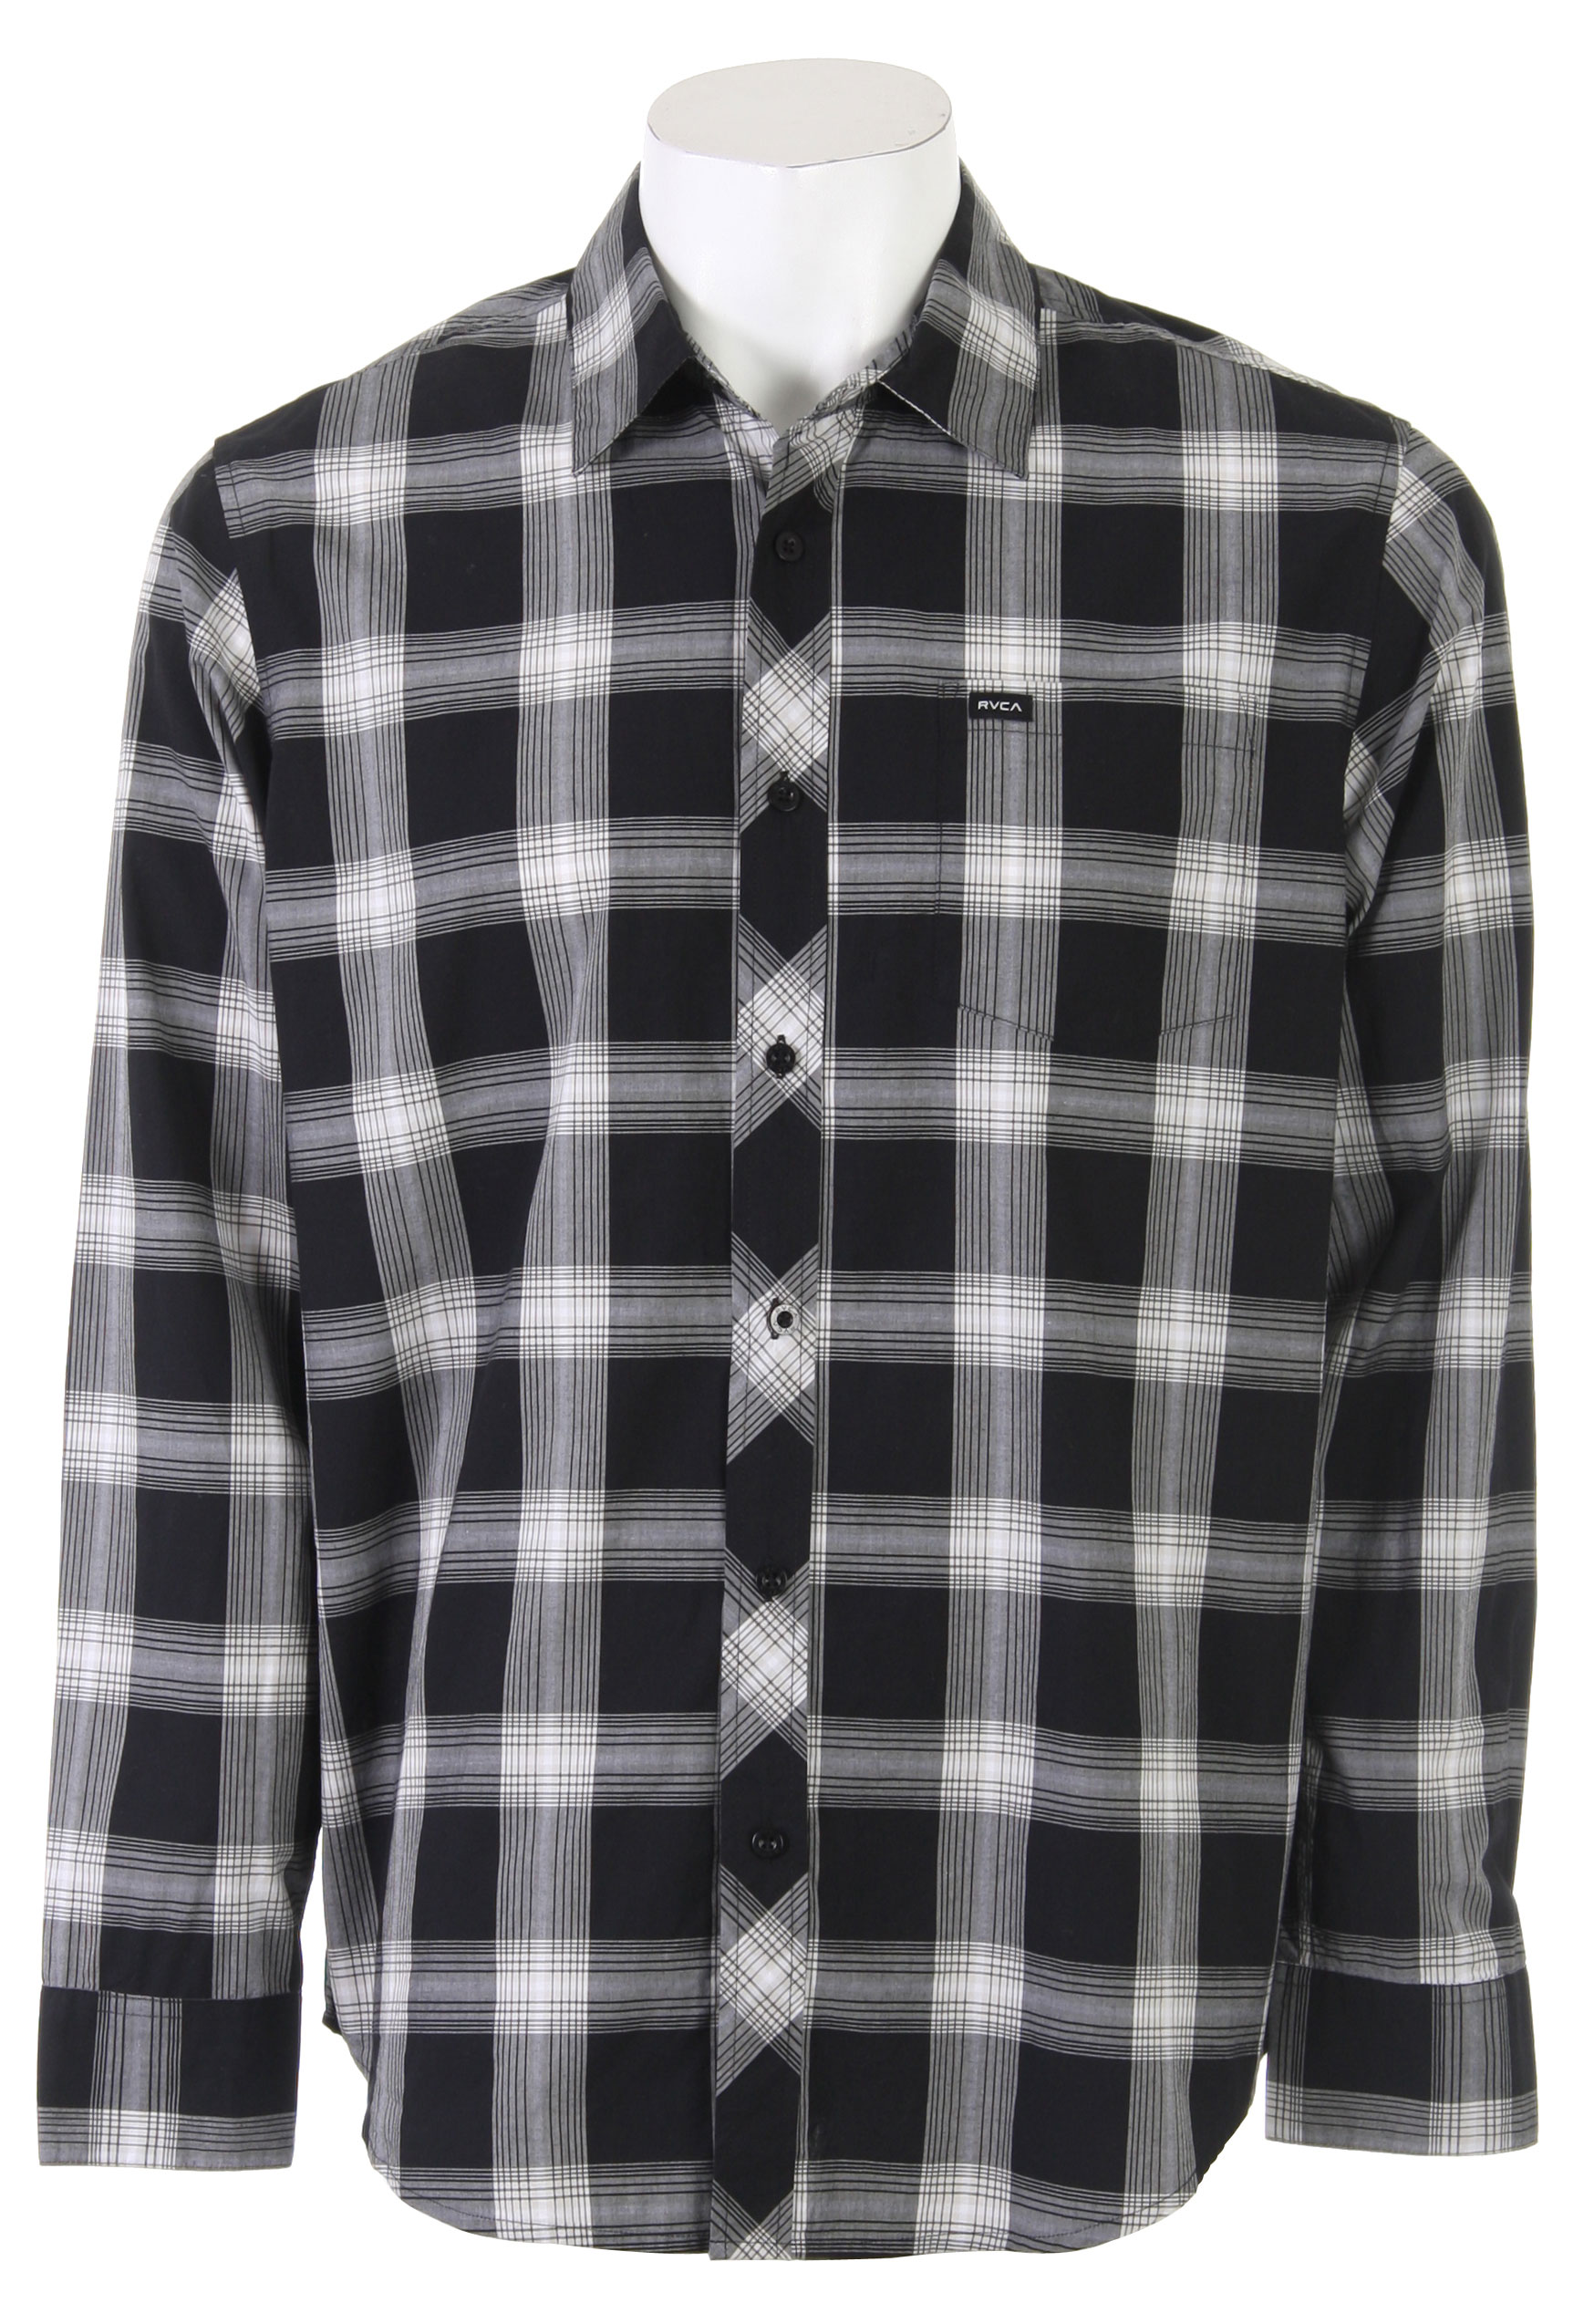 The RVCA 17Th Street Plaid L/S Shirt can be worn all year long. Featuring its casual plaid design, this collared button down shirt is a must-have. So comfortable, you can pair these with jeans or some trousers and you're all set to go. There you have it, the shirt that'll go with just about anything. Just wear it and be sure to feel good.Key Features of the RVCA 17Th Street Plaid L/S Shirt: Regular Fit Cotton poplin yarn dyed plaid long sleeve button down shirt Patch pocket at front left chest with RVCA woven label - $31.95